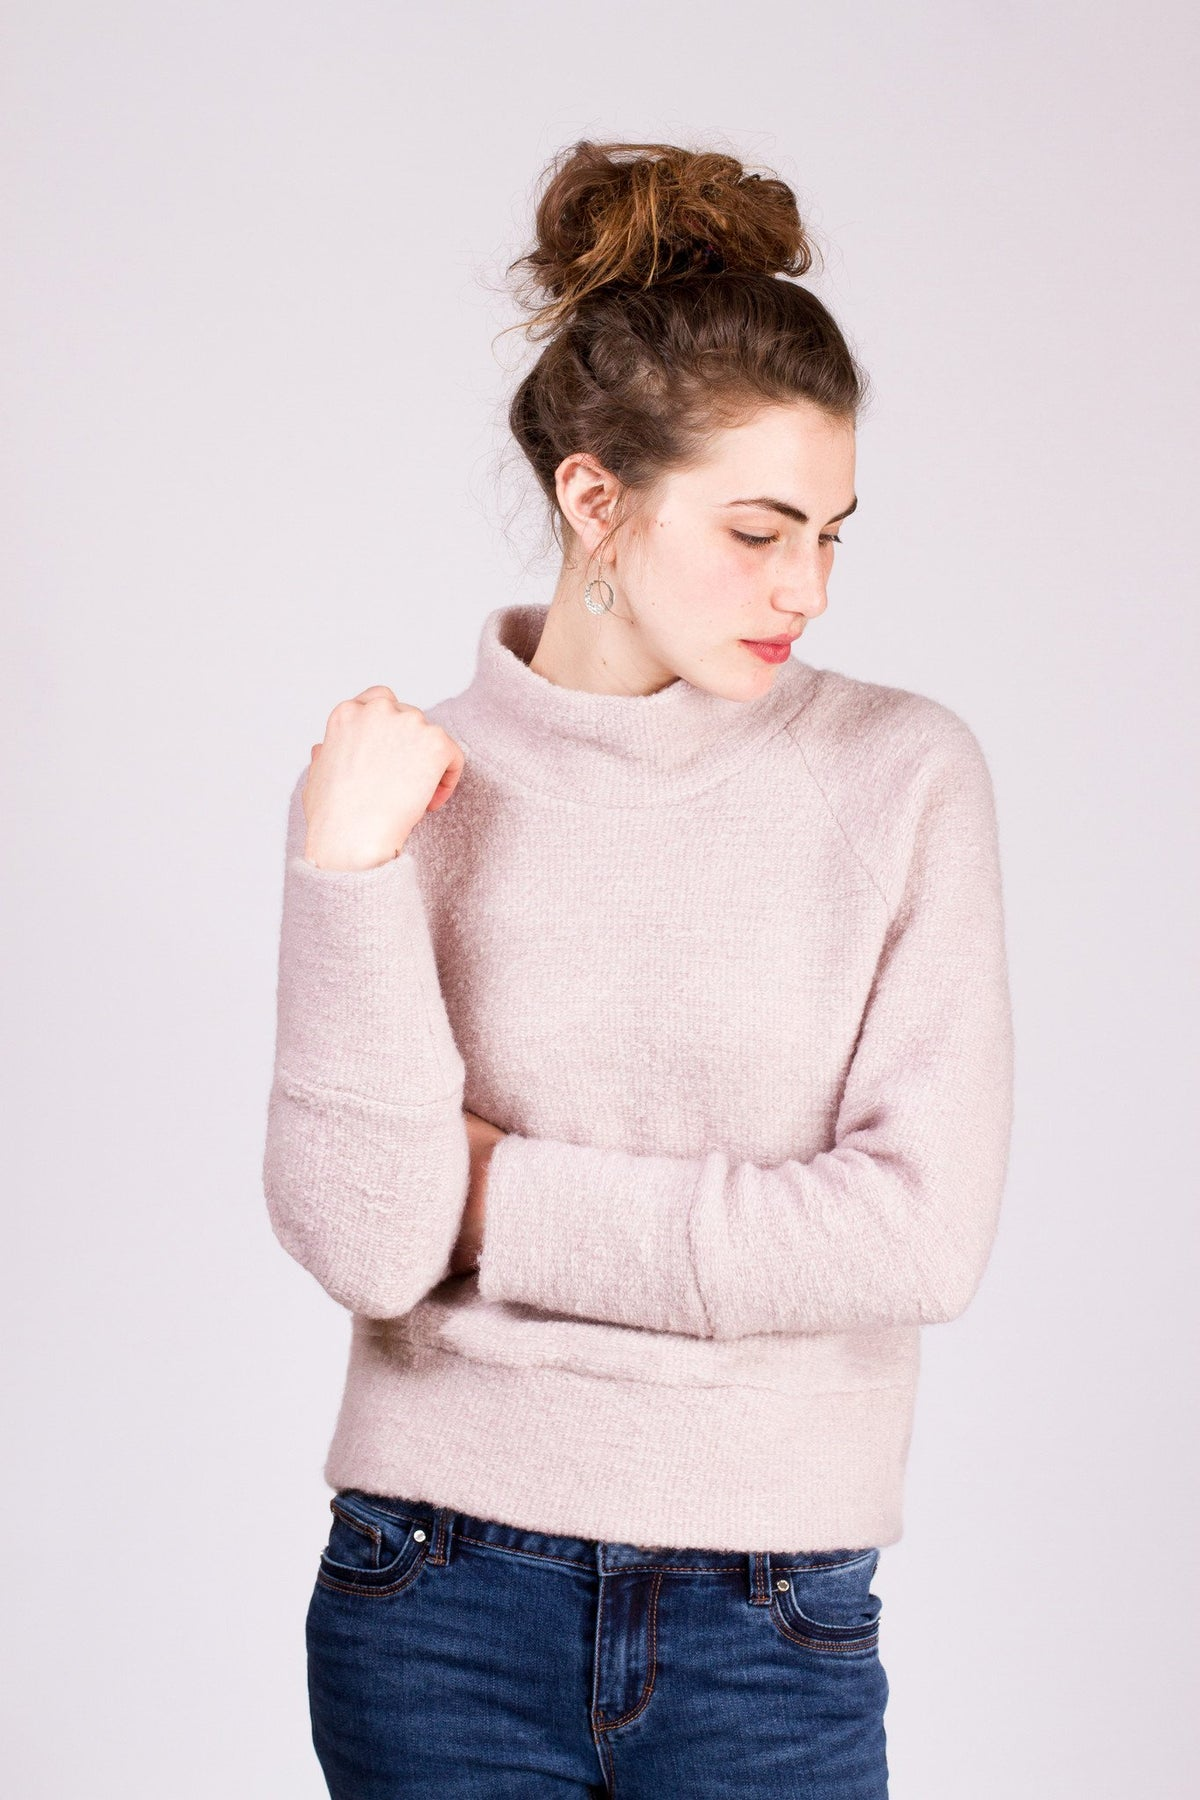 Toaster Sweaters - Sew House 7 - MaaiDesign